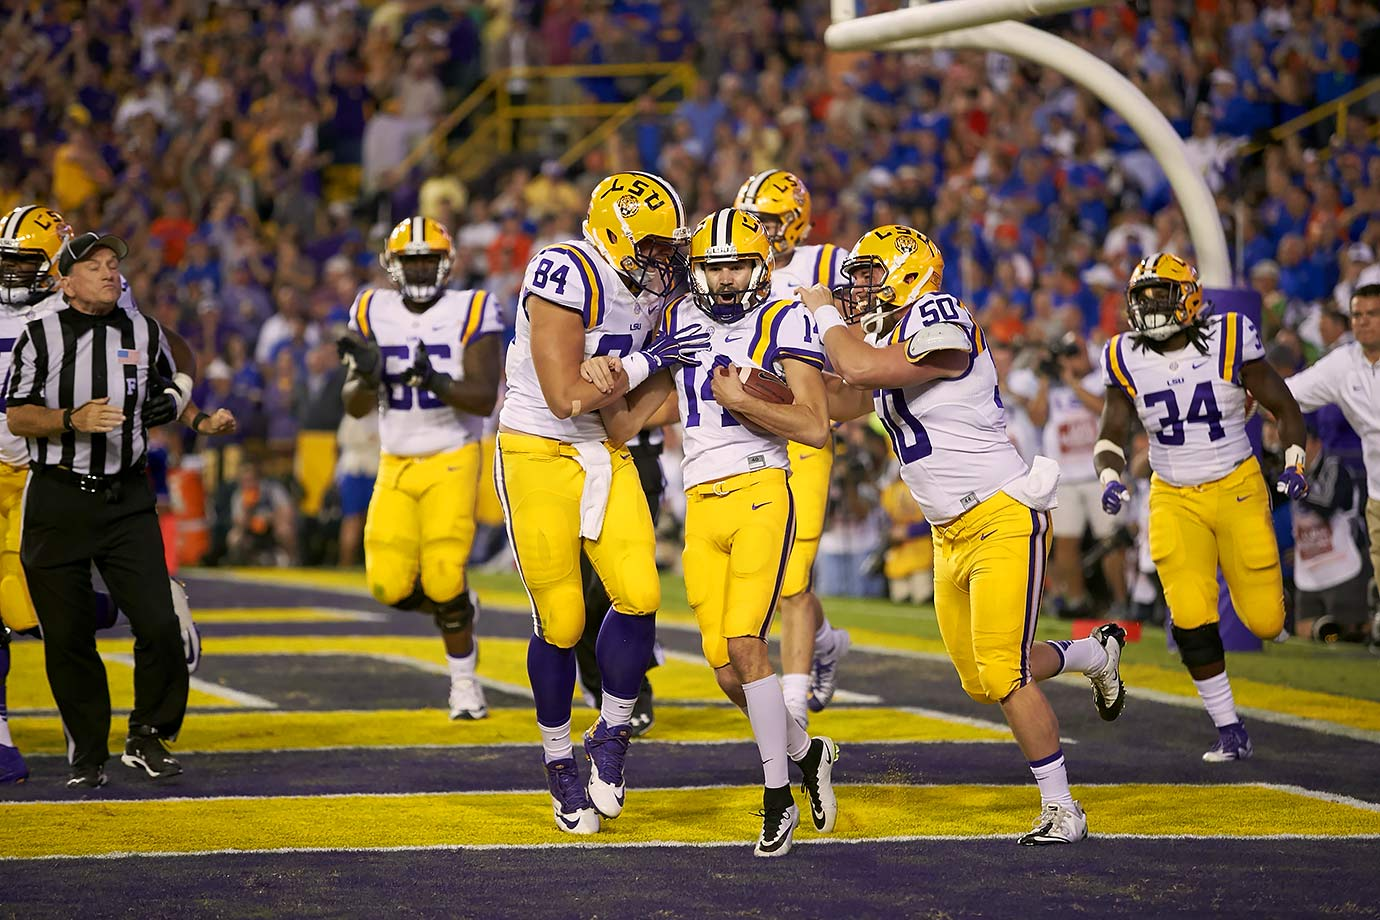 In one of the few offensive outbursts for either team (especially Florida) this season, LSU caught the Gators napping in vintage Les Miles fashion to break a 28–28 tie in the 4th quarter. Kicker Trent Domingue's 16-yard touchdown scamper on a fake field goal was the Tigers' only score of the second half.